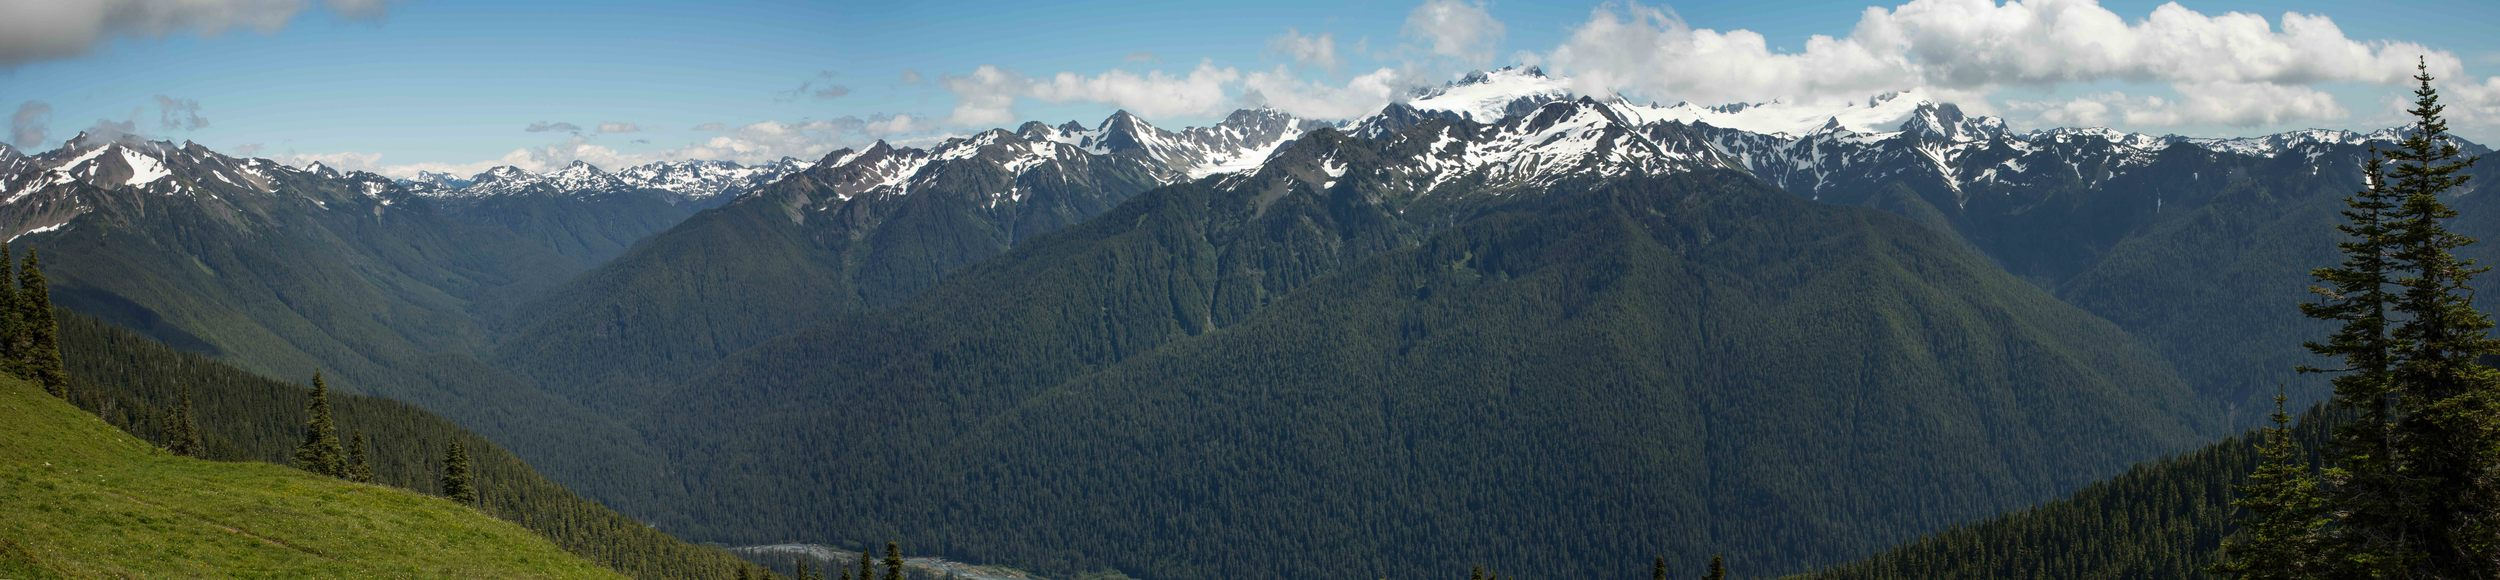 Panoramic view of Mt. Olympus after the fog lifted, near the summit of Bogachiel Peak.